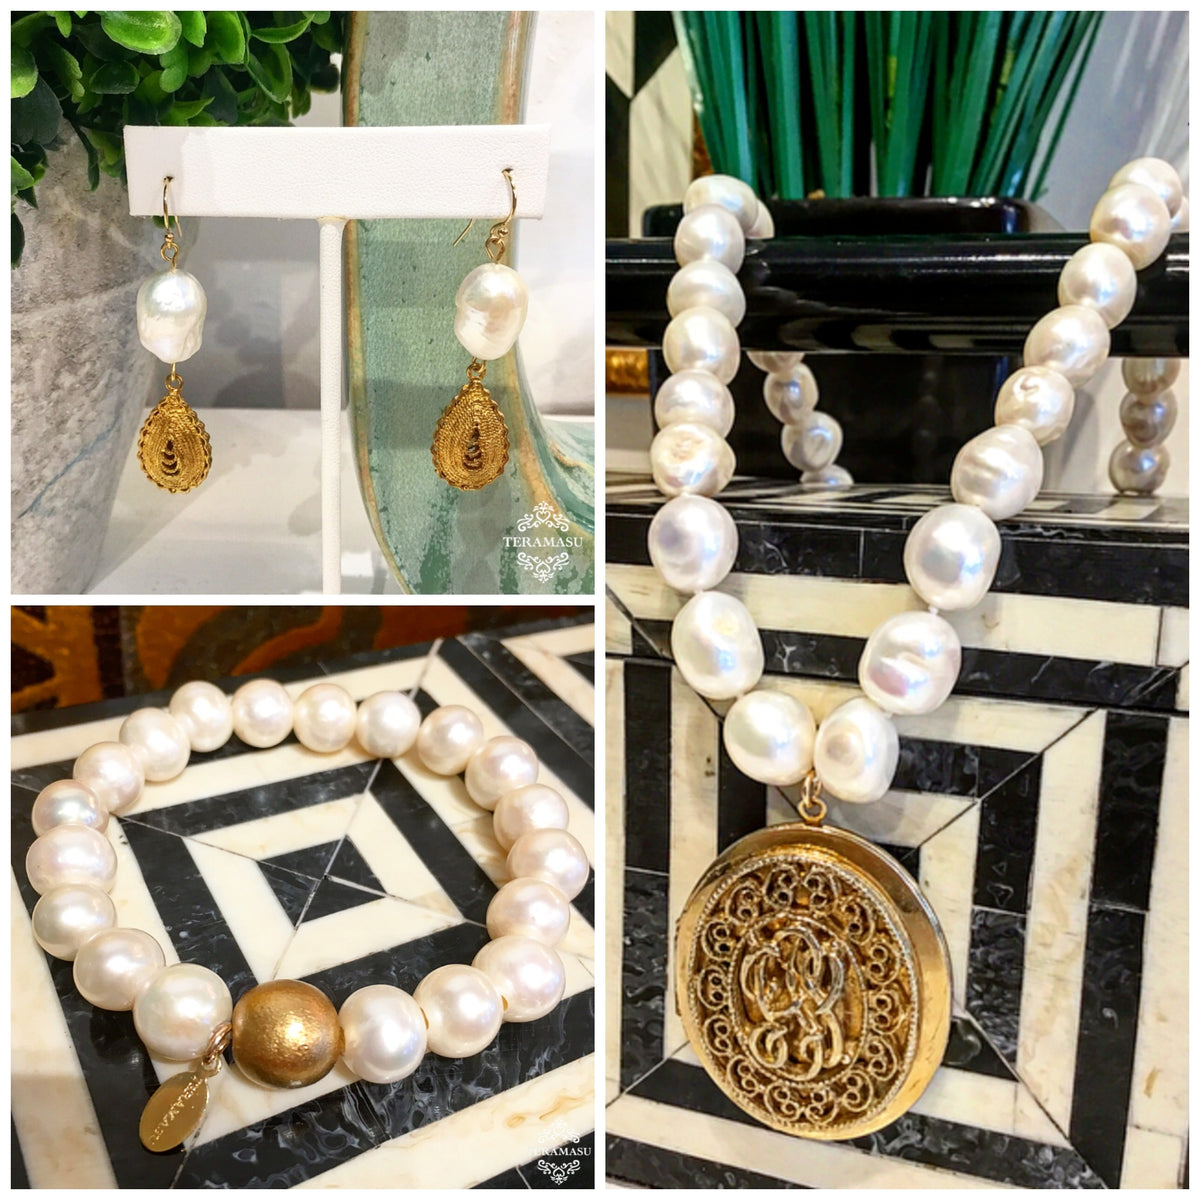 Fashion Friday: Fabulous New Arrivals & Classic Pearl Jewelry Inspiration for Your One-of-a-Kind Style from Teramasu